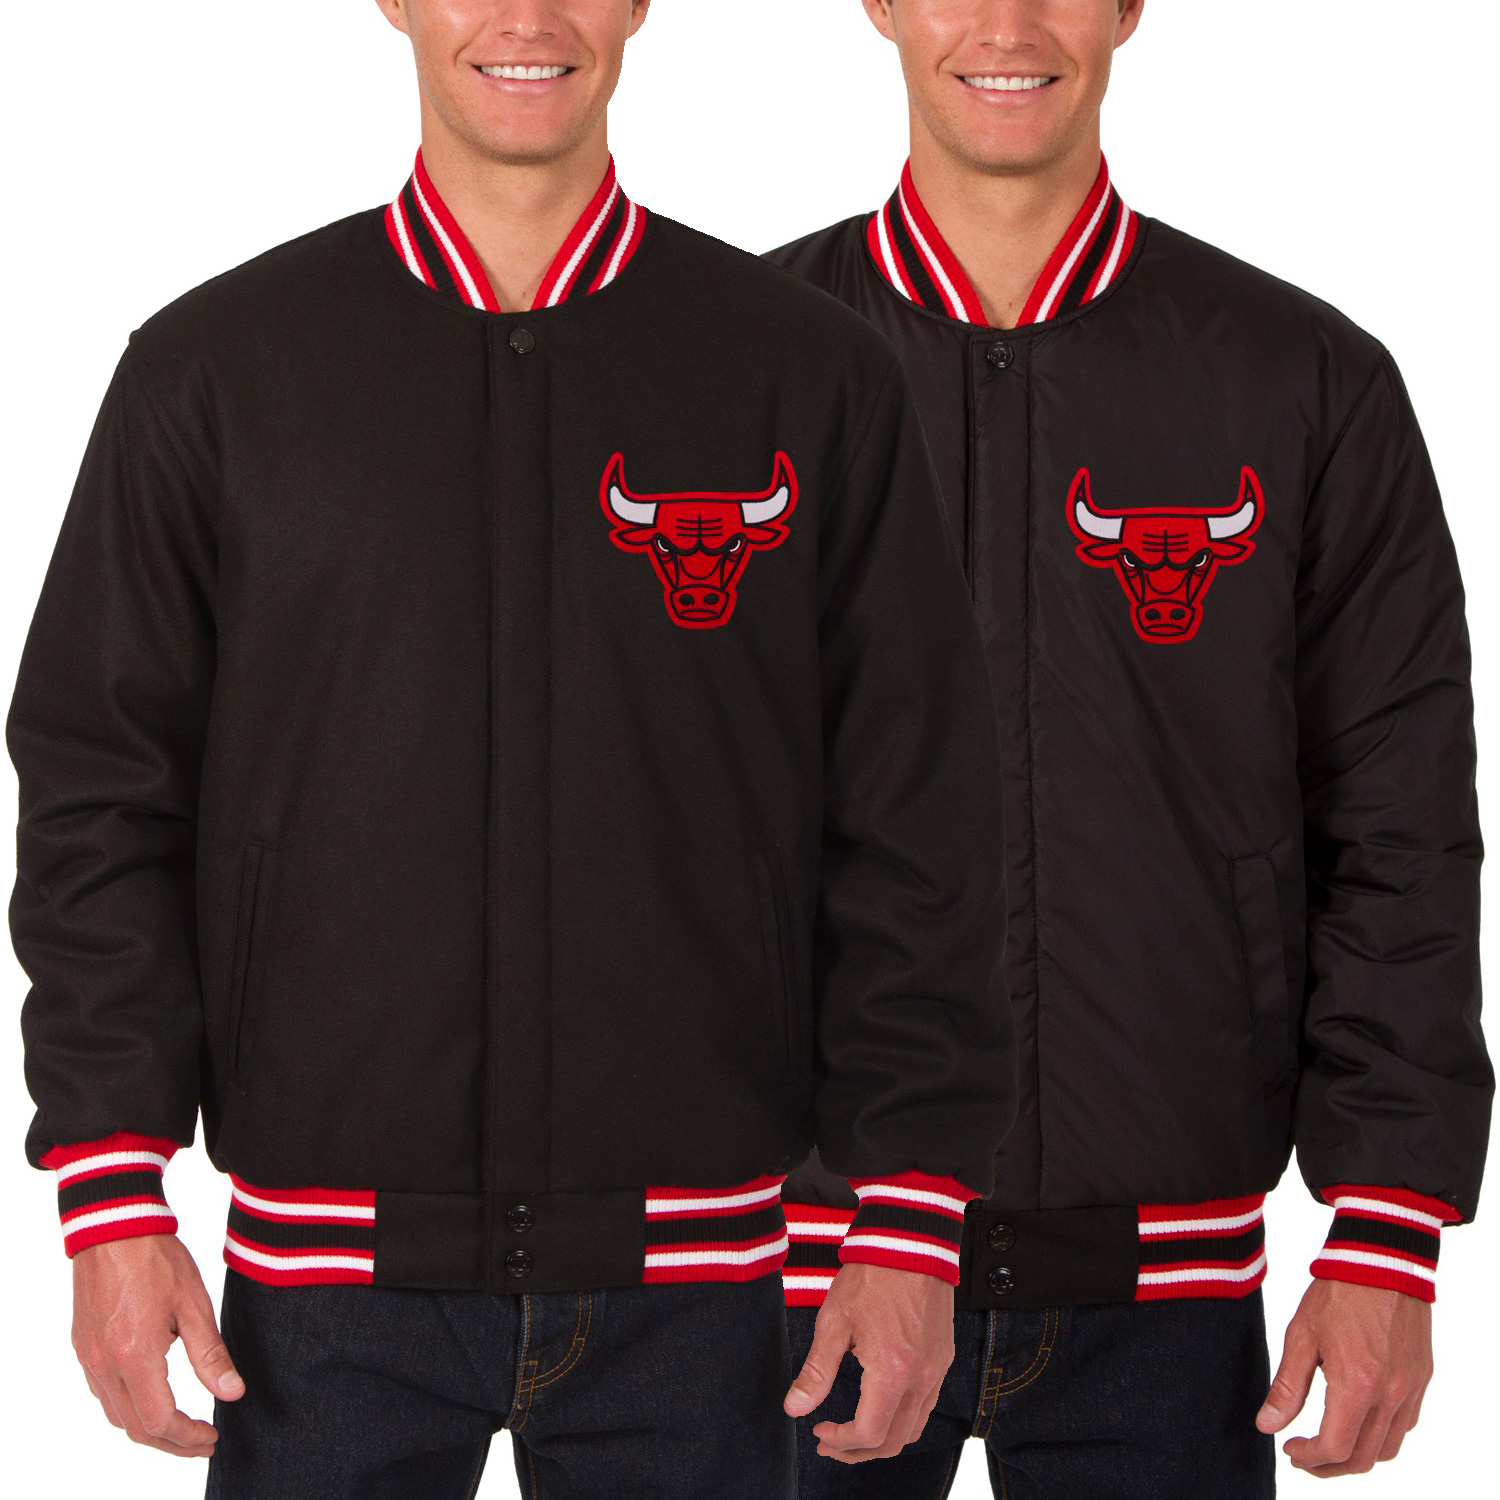 Chicago Bulls JH Design Reversible Wool Logo Jacket - Black